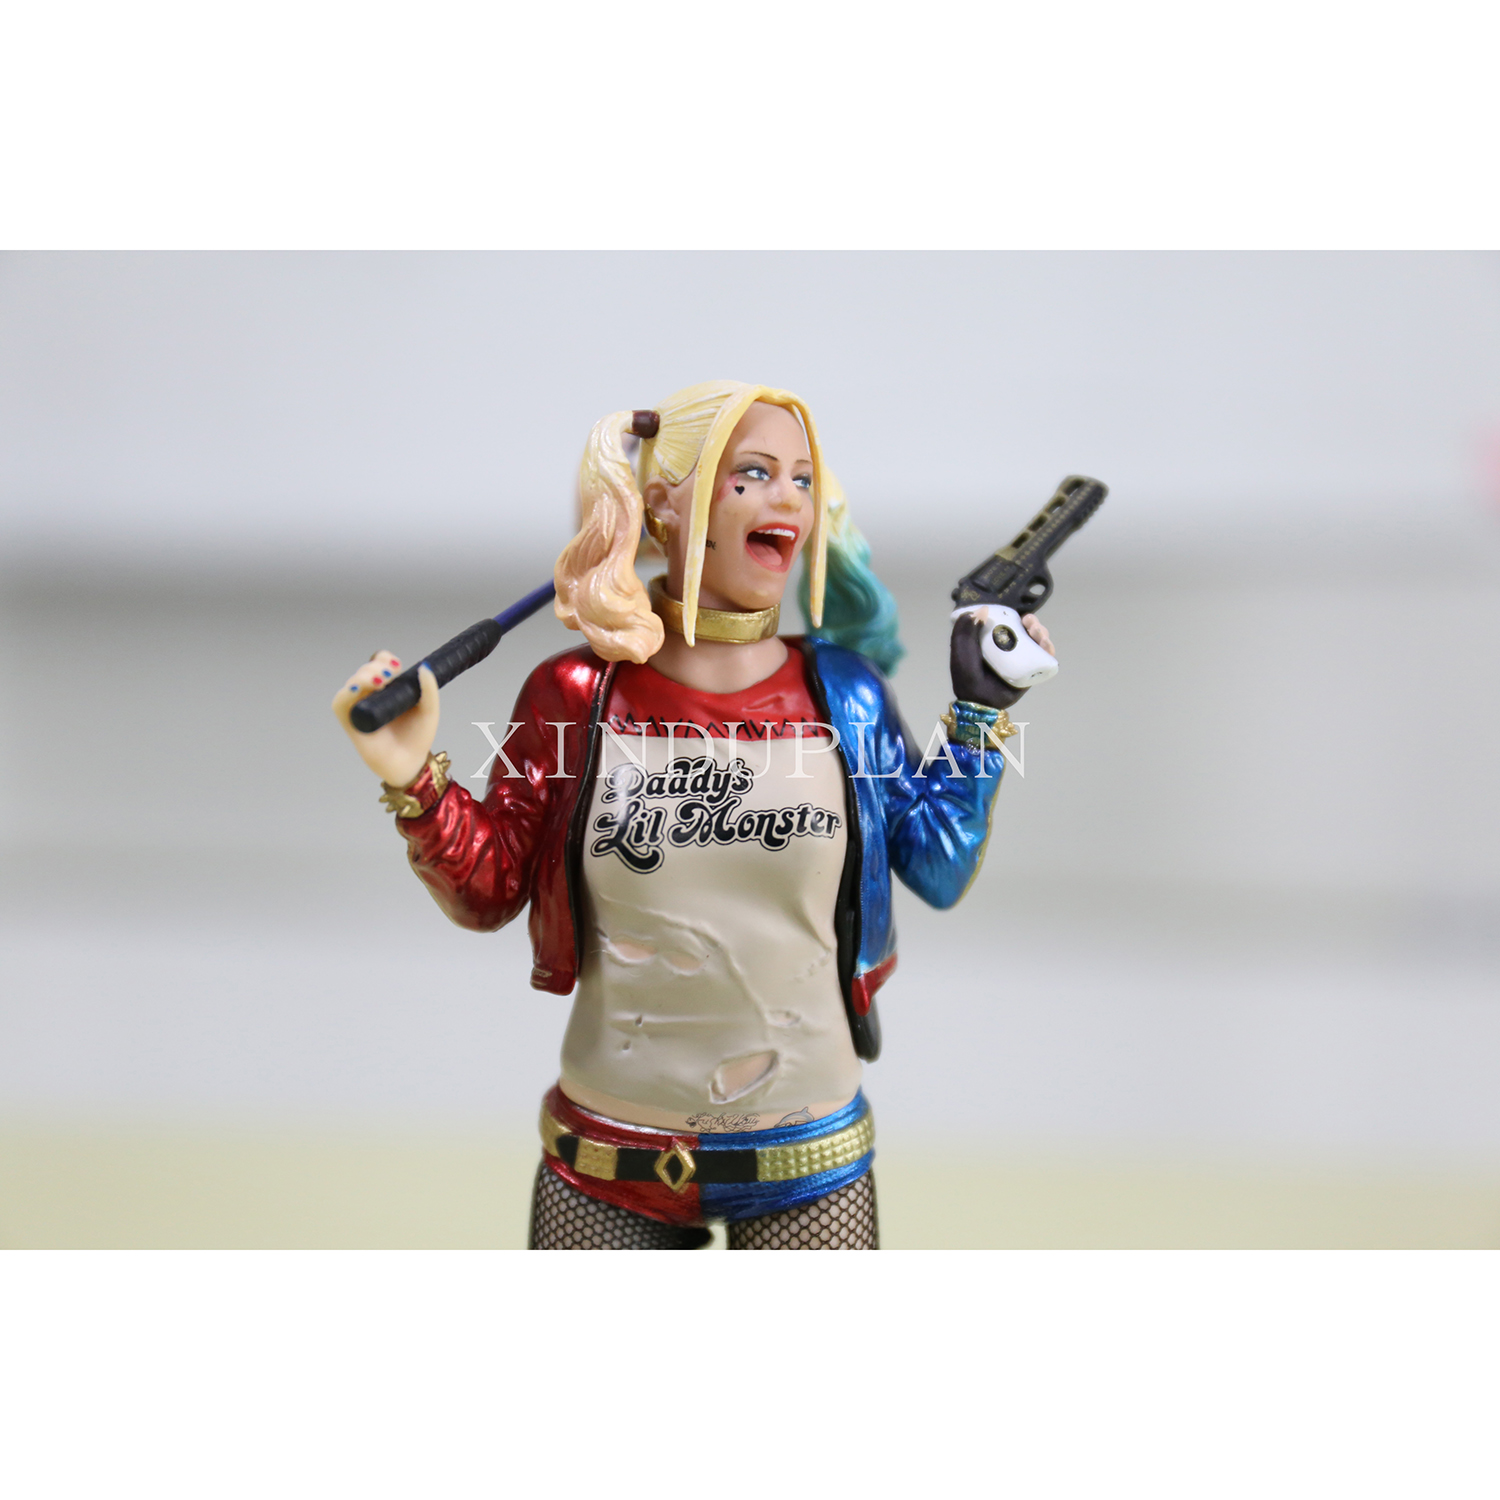 XINDUPLAN DC Comics Justice League Harley Quinn Suicide Squad Joker Action Figure Toys 19cm Kids Collection Model 1076 dc comics designer series darwyn cooke batman supergirl harley quinn pvc action figure collection model toys 7 18cm